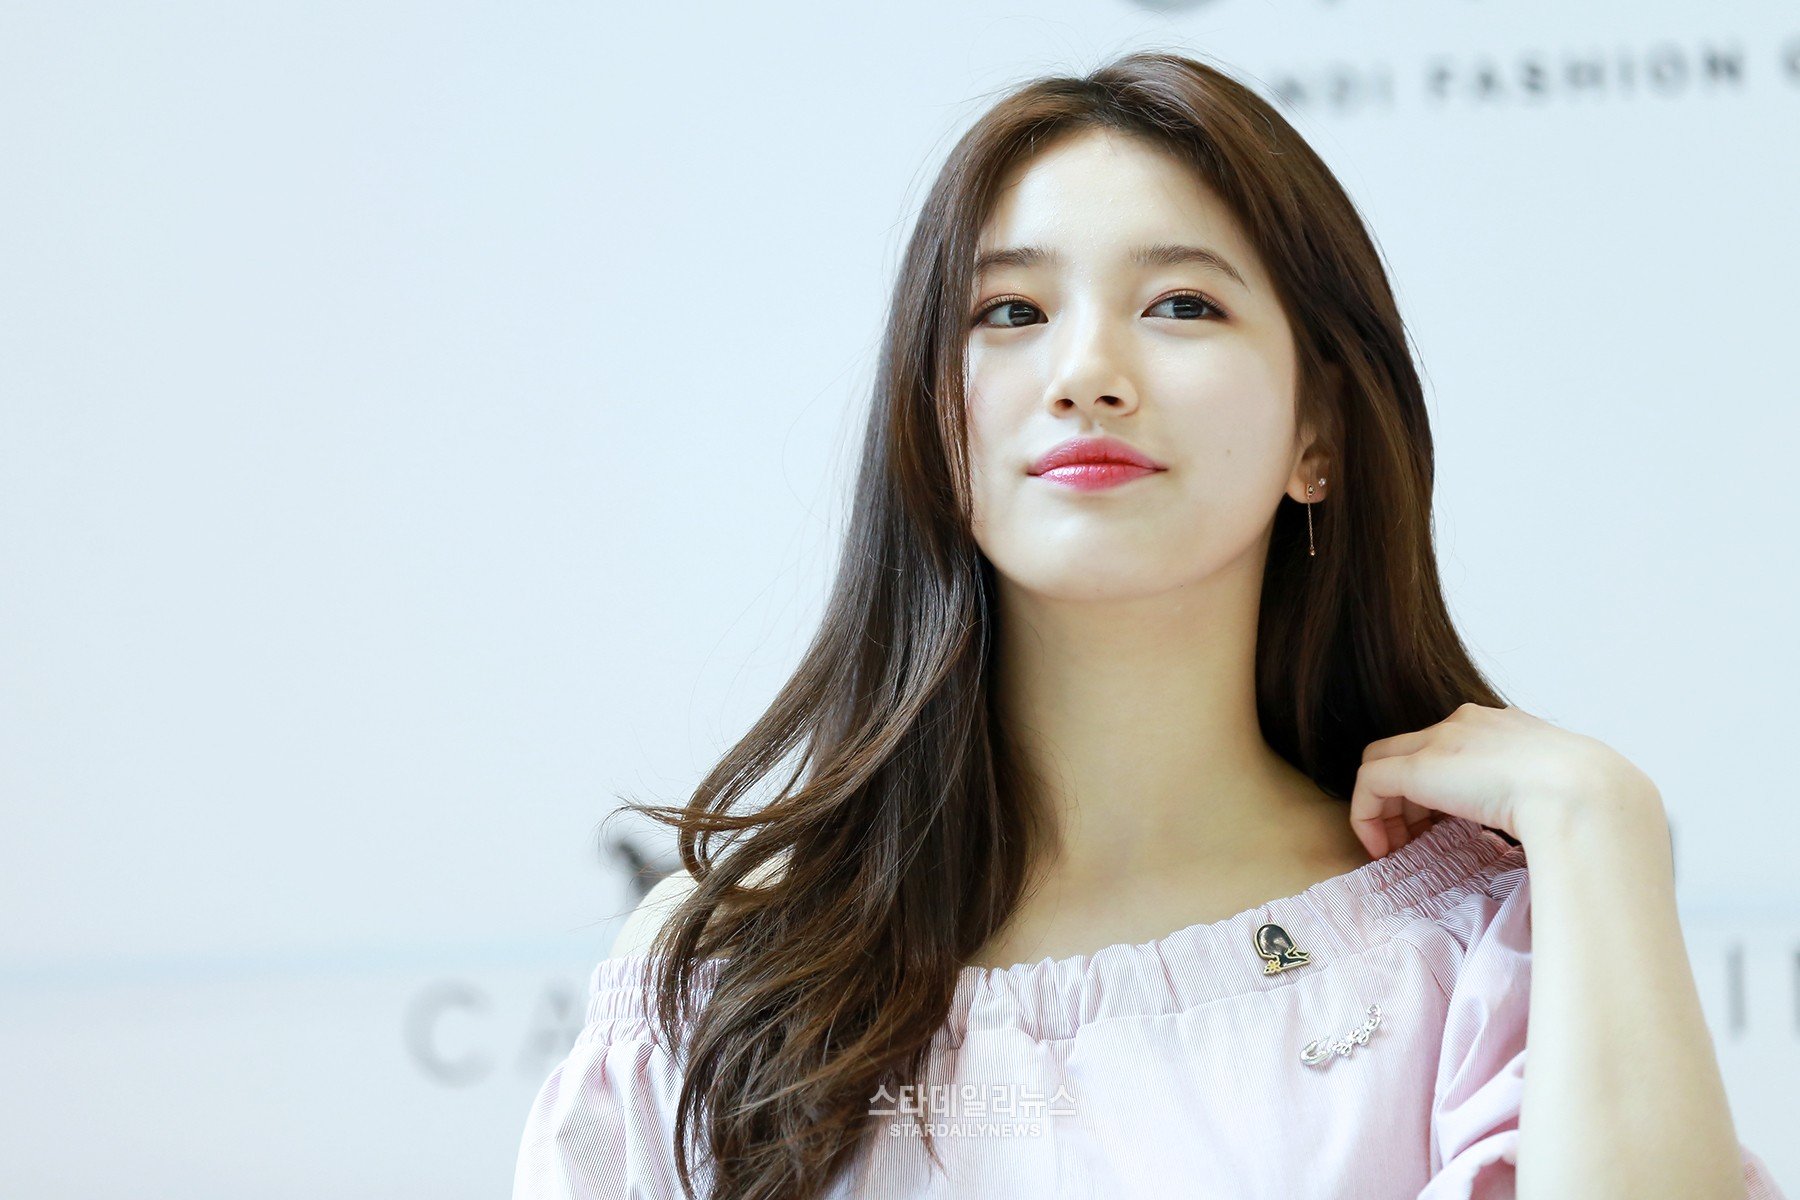 miss a s suzy identity stolen by criminals in india